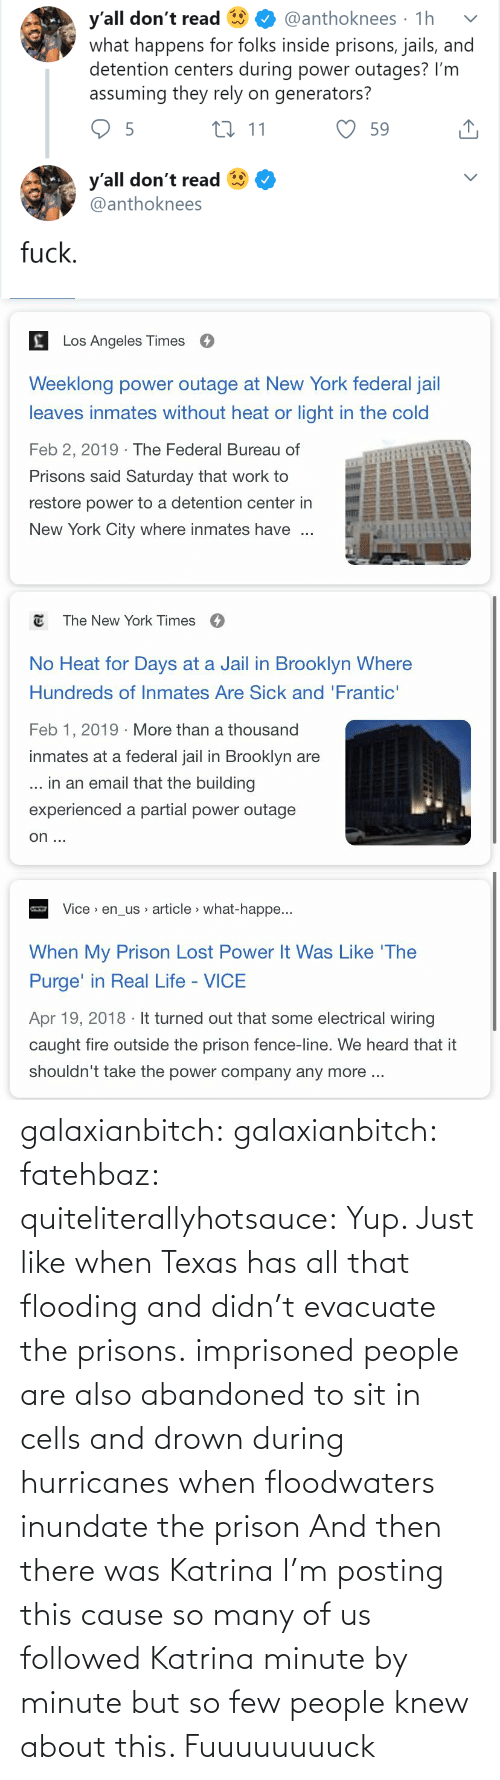 article: y'all don't read  what happens for folks inside prisons, jails, and  detention centers during power outages? I'm  assuming they rely on generators?  @anthoknees · 1h  27 11  59  y'all don't read  @anthoknees  fuck.   Los Angeles Times  Weeklong power outage at New York federal jail  leaves inmates without heat or light in the cold  Feb 2, 2019 · The Federal Bureau of  Prisons said Saturday that work to  restore power to a detention center in  New York City where inmates have   E The New York Times  O  No Heat for Days at a Jail in Brooklyn Where  Hundreds of Inmates Are Sick and 'Frantic'  Feb 1, 2019 · More than a thousand  inmates at a federal jail in Brooklyn are  ... in an email that the building  experienced a partial power outage  on ...   Vice > en_us article > what-happe...  When My Prison Lost Power It Was Like 'The  Purge' in Real Life - VICE  Apr 19, 2018 · It turned out that some electrical wiring  caught fire outside the prison fence-line. We heard that it  shouldn't take the power company any more .. galaxianbitch: galaxianbitch:   fatehbaz:  quiteliterallyhotsauce:   Yup. Just like when Texas has all that flooding and didn't evacuate the prisons.   imprisoned people are also abandoned to sit in cells and drown during hurricanes when floodwaters inundate the prison   And then there was Katrina        I'm posting this cause so many of us followed Katrina minute by minute but so few people knew about this.    Fuuuuuuuuck